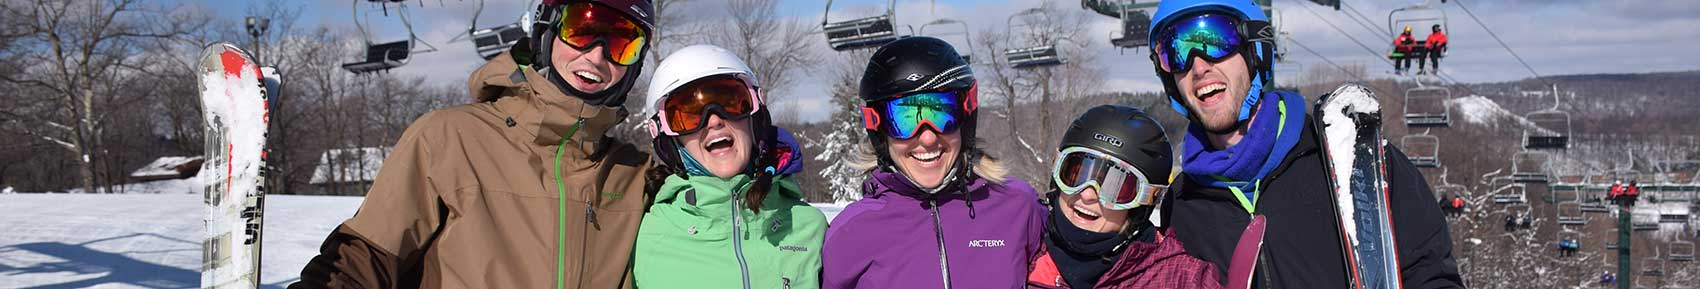 young-adults-smiling-on-the-slopes